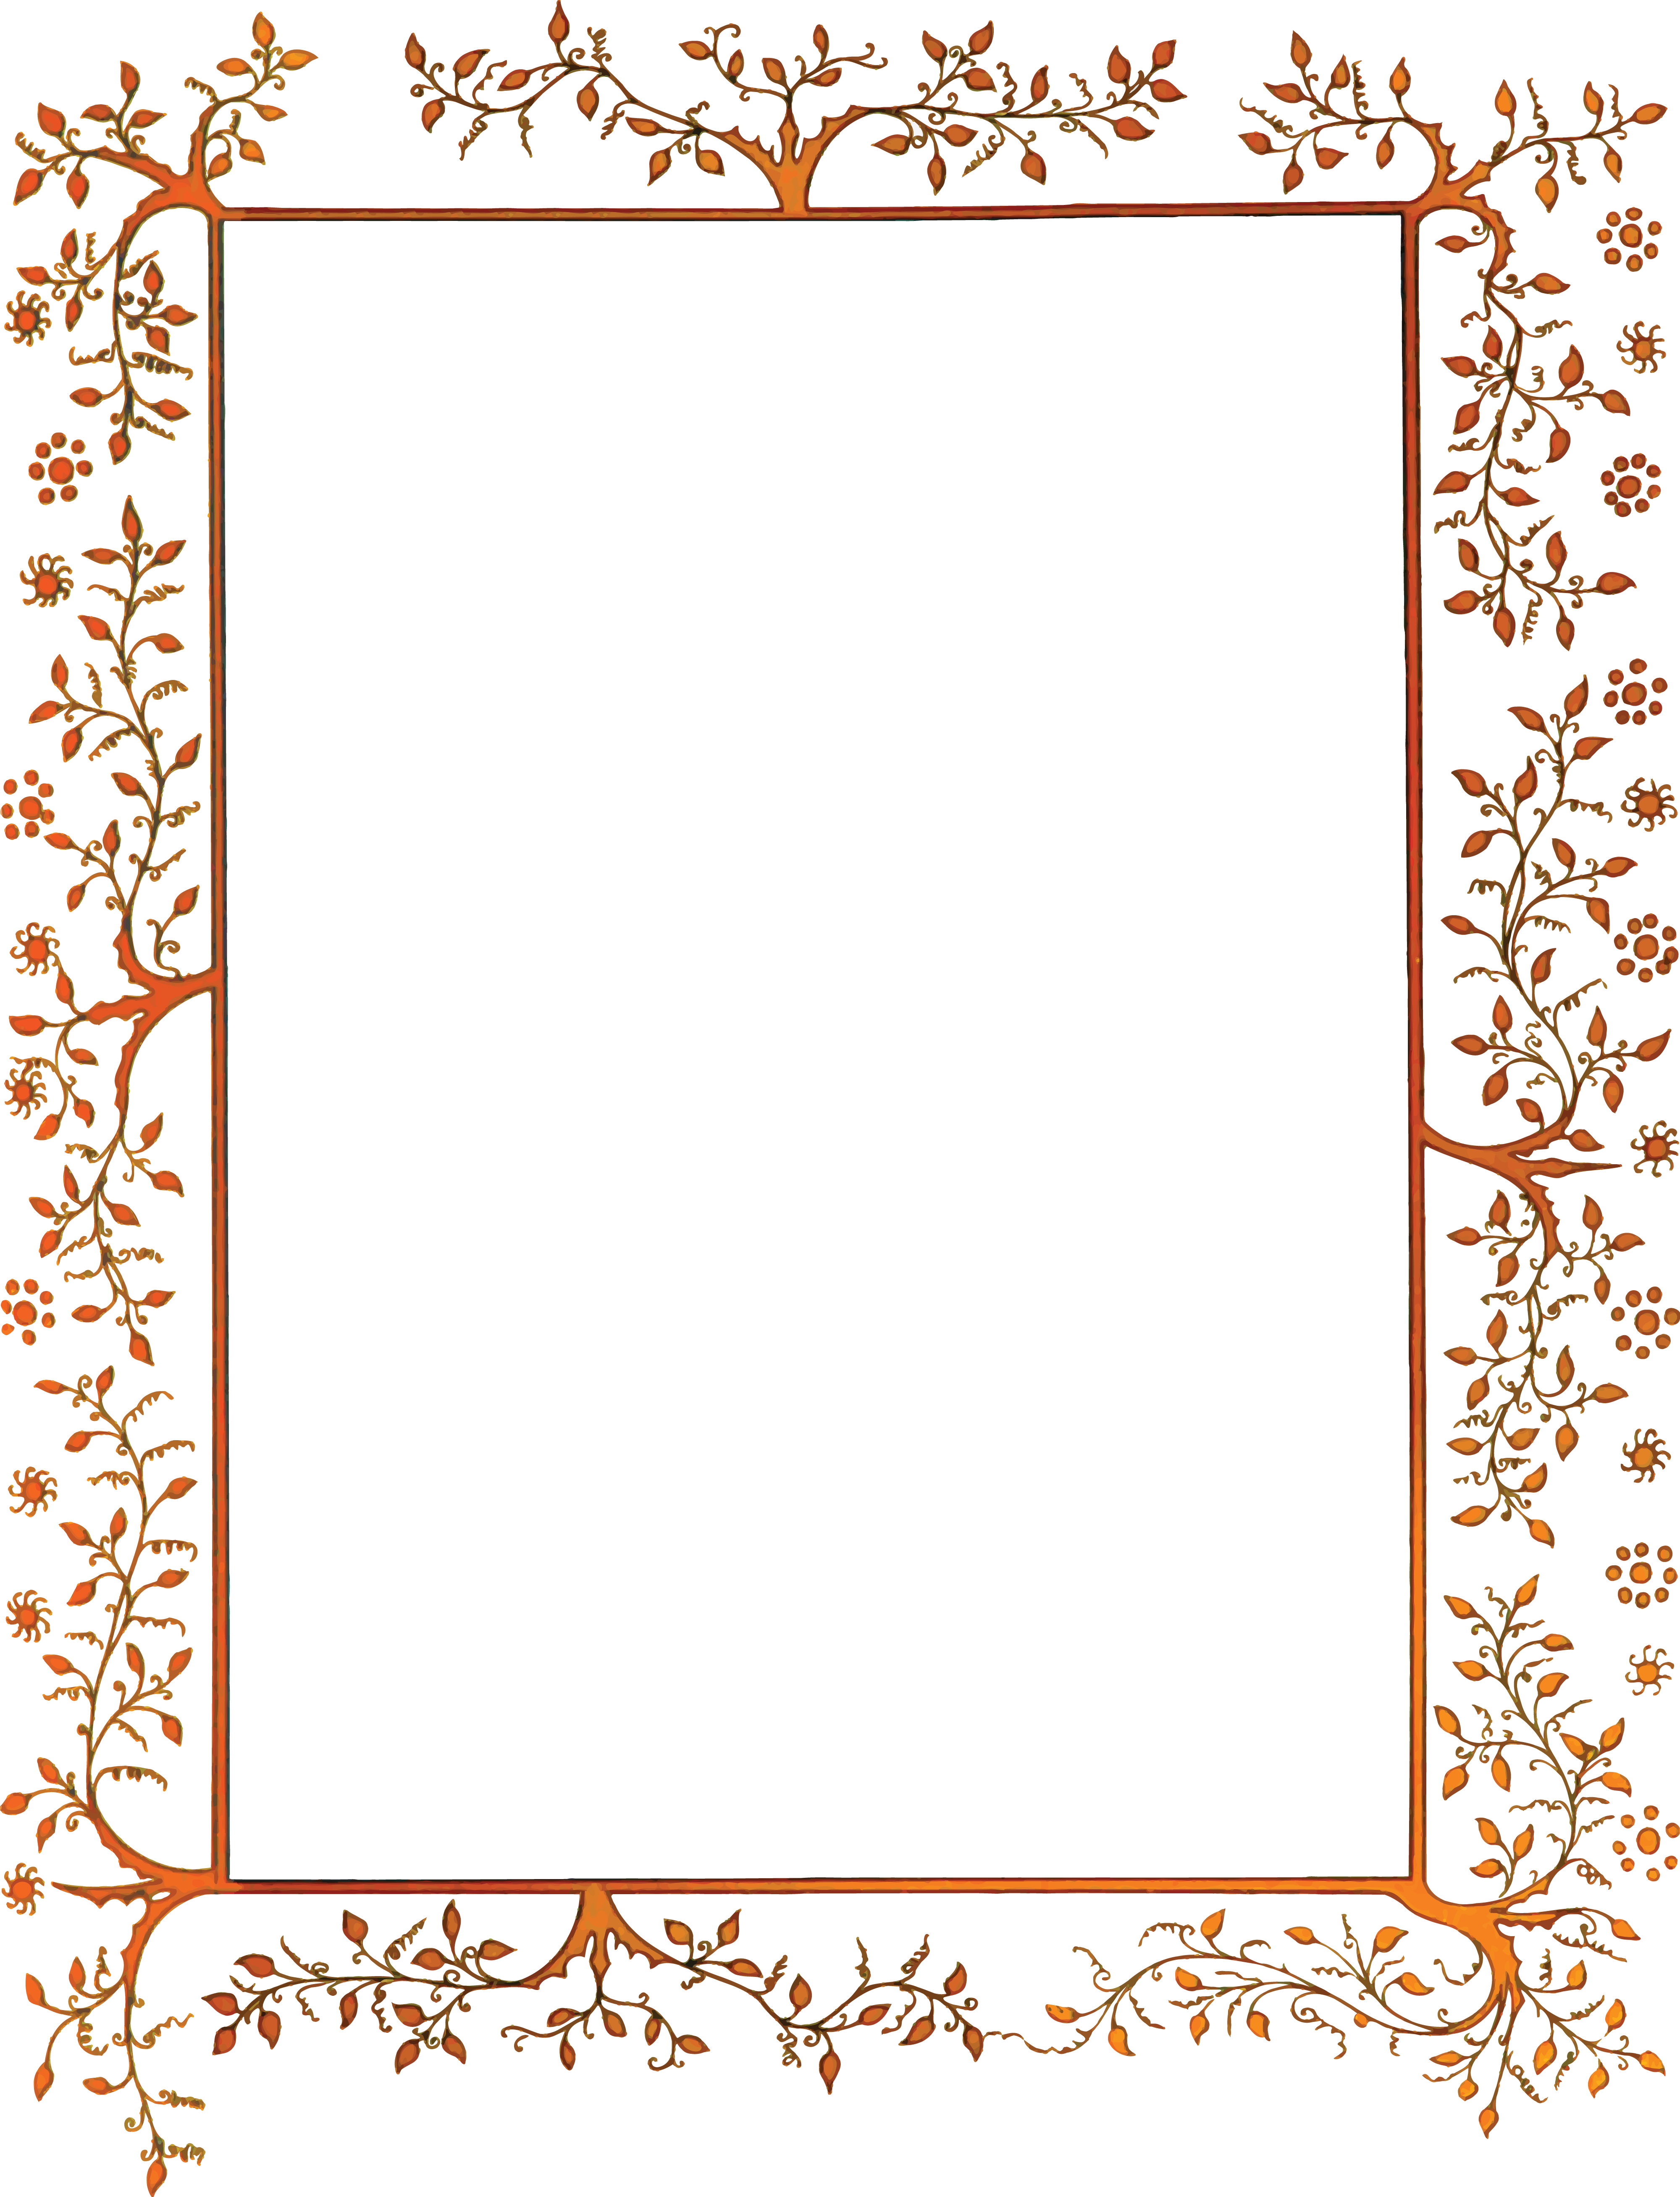 Free Clipart Of A Vintage Floral Decorative Border 00012058